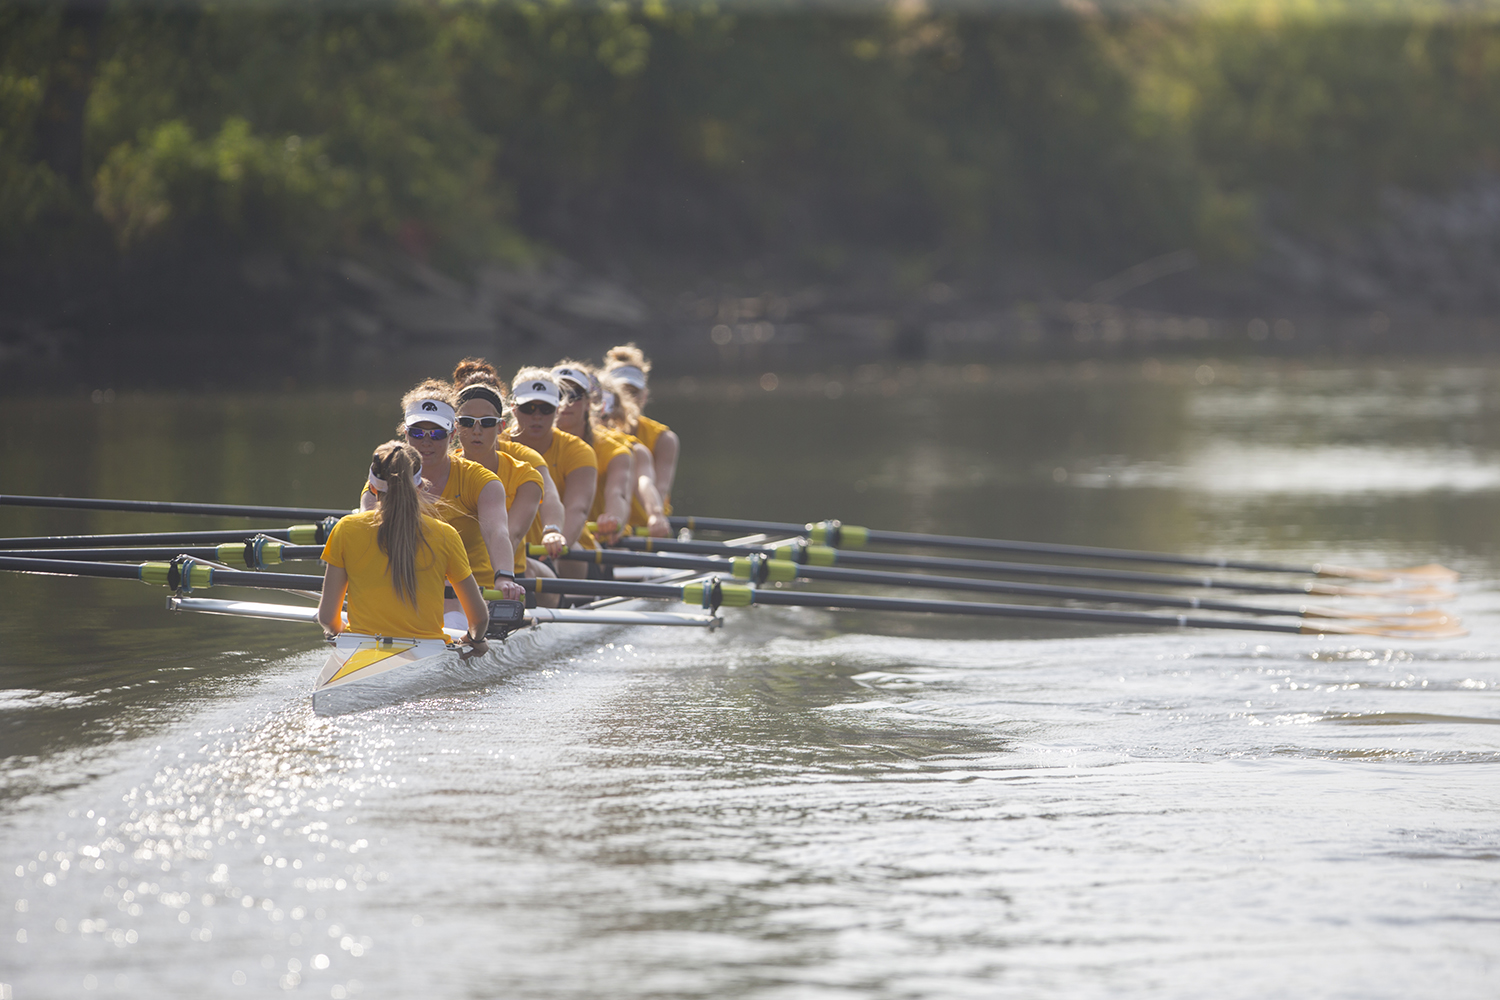 Iowa's rowing team practices on the Iowa River on Friday, Sept. 15, 2017. The rowing team recently finalized their schedule, with two home competitions on Oct. 6 and 7.